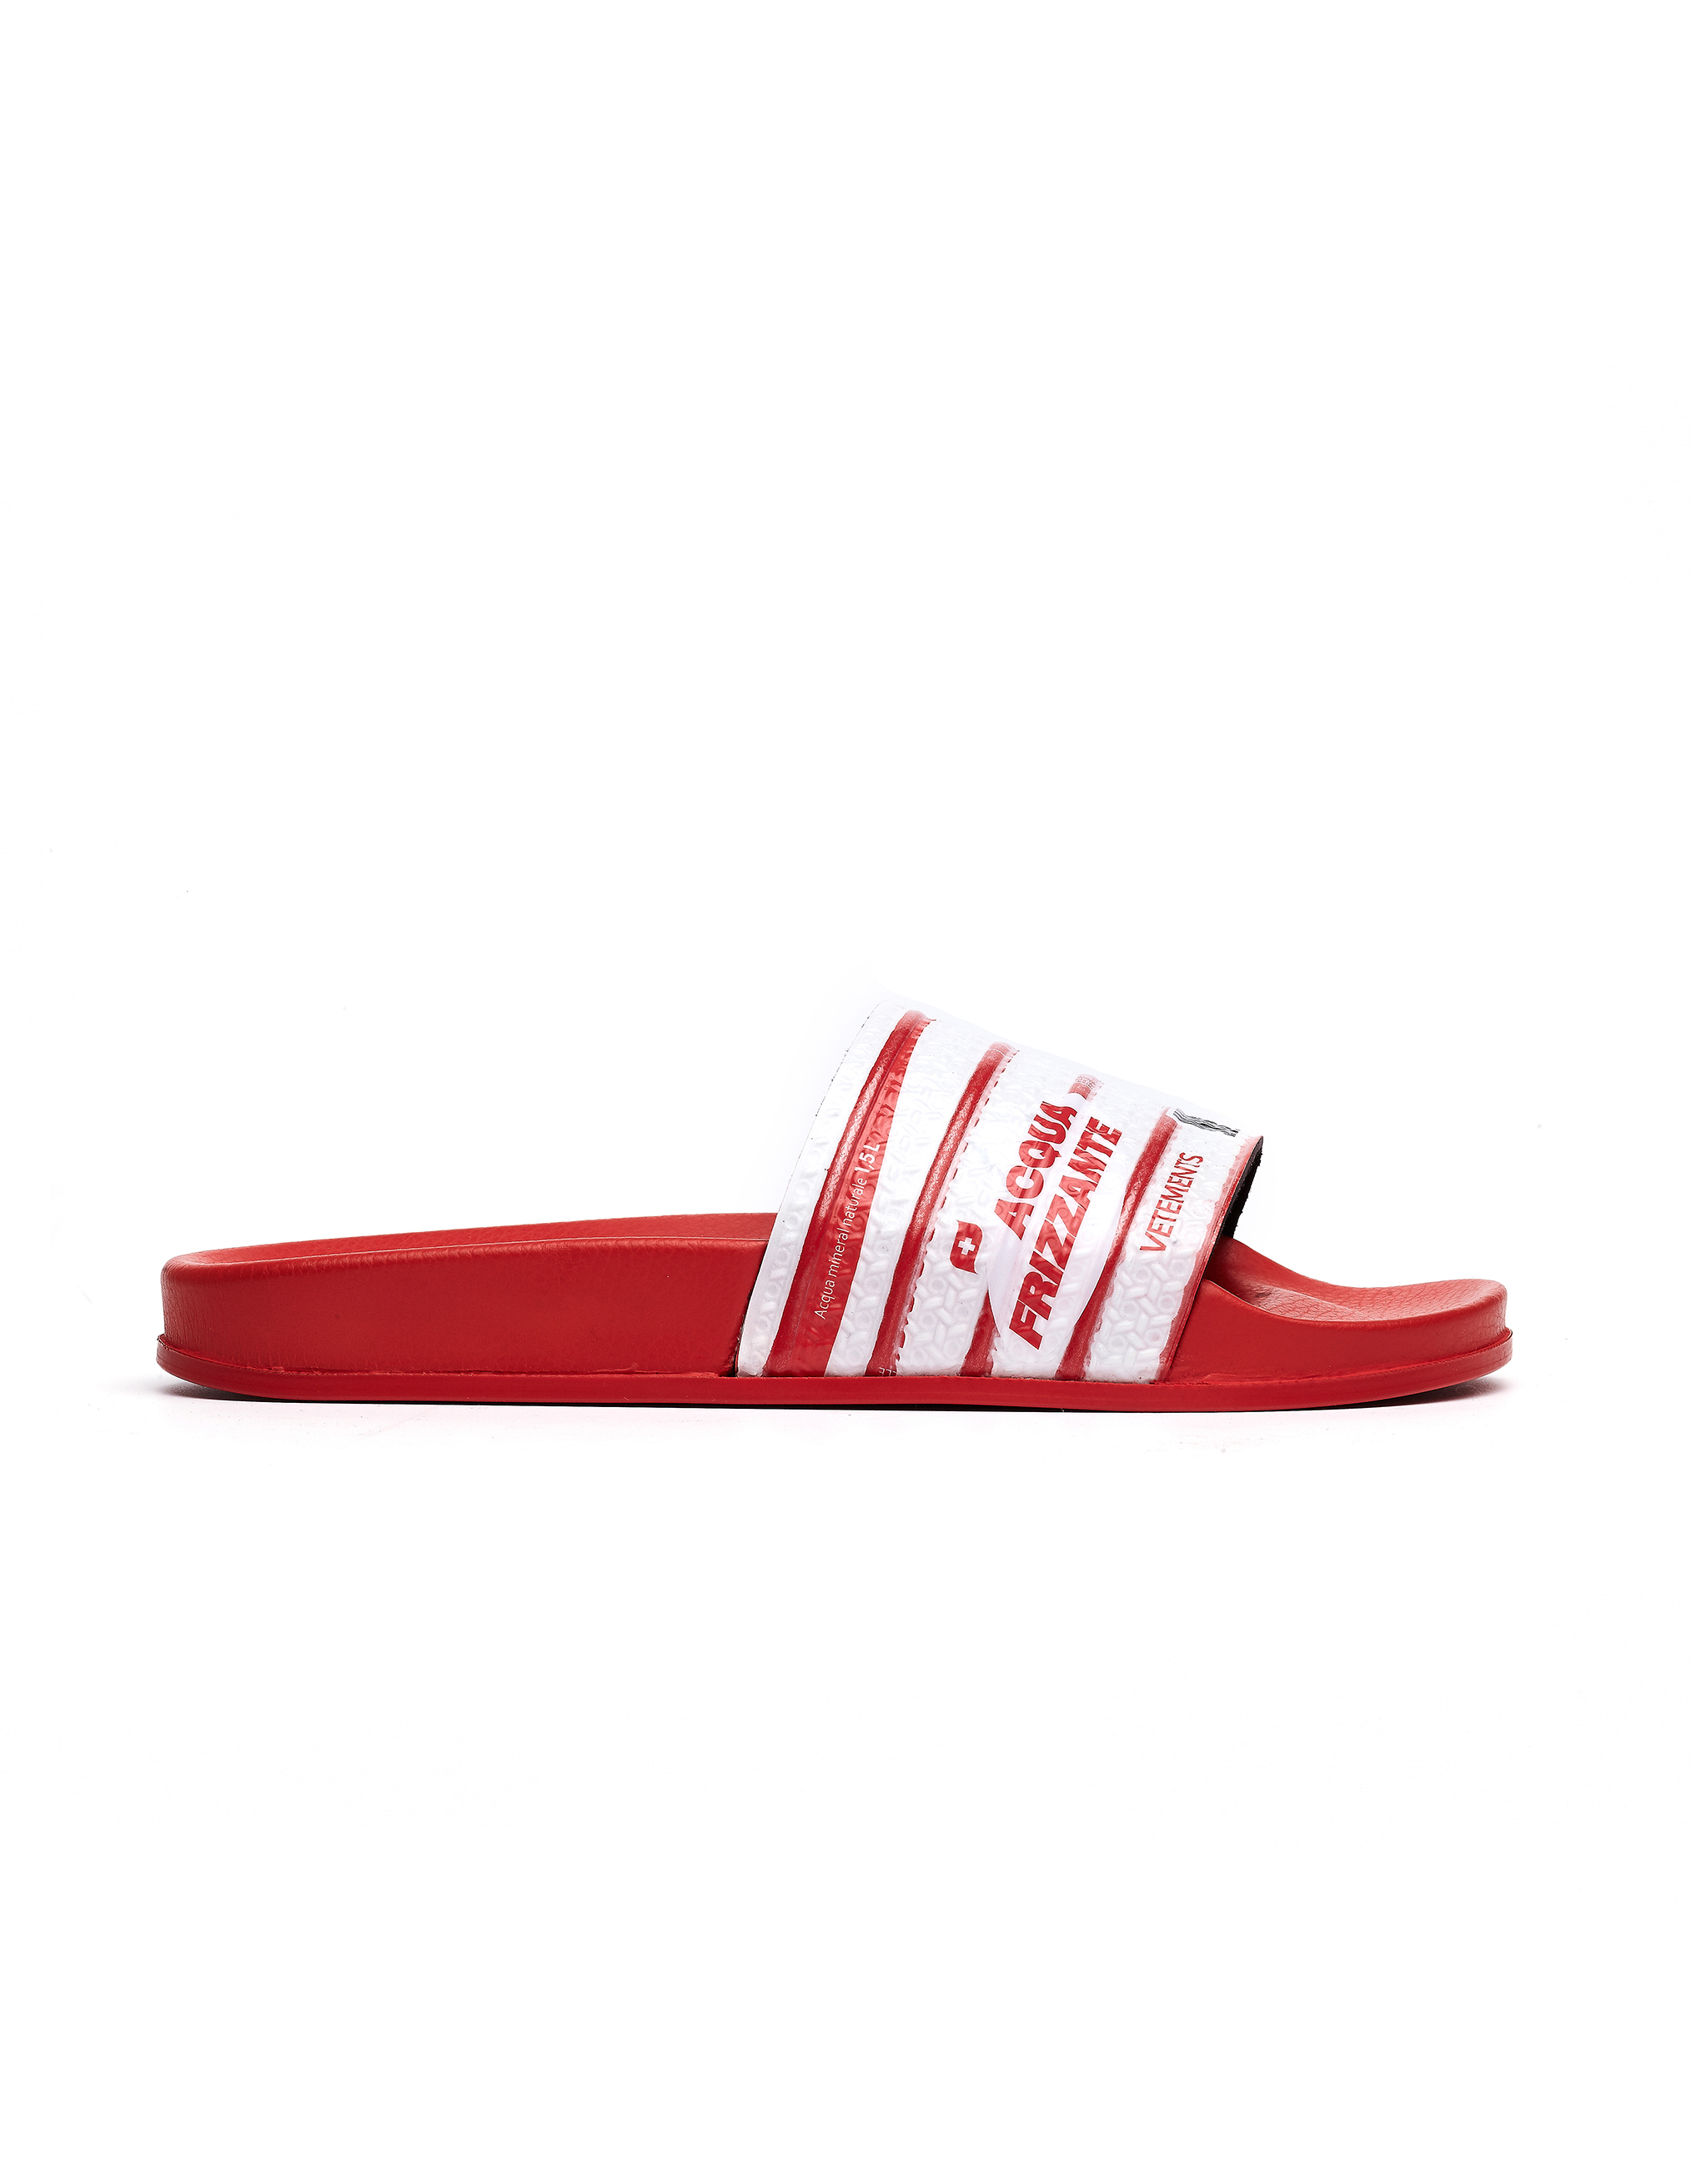 Vetements Red Printed Slides